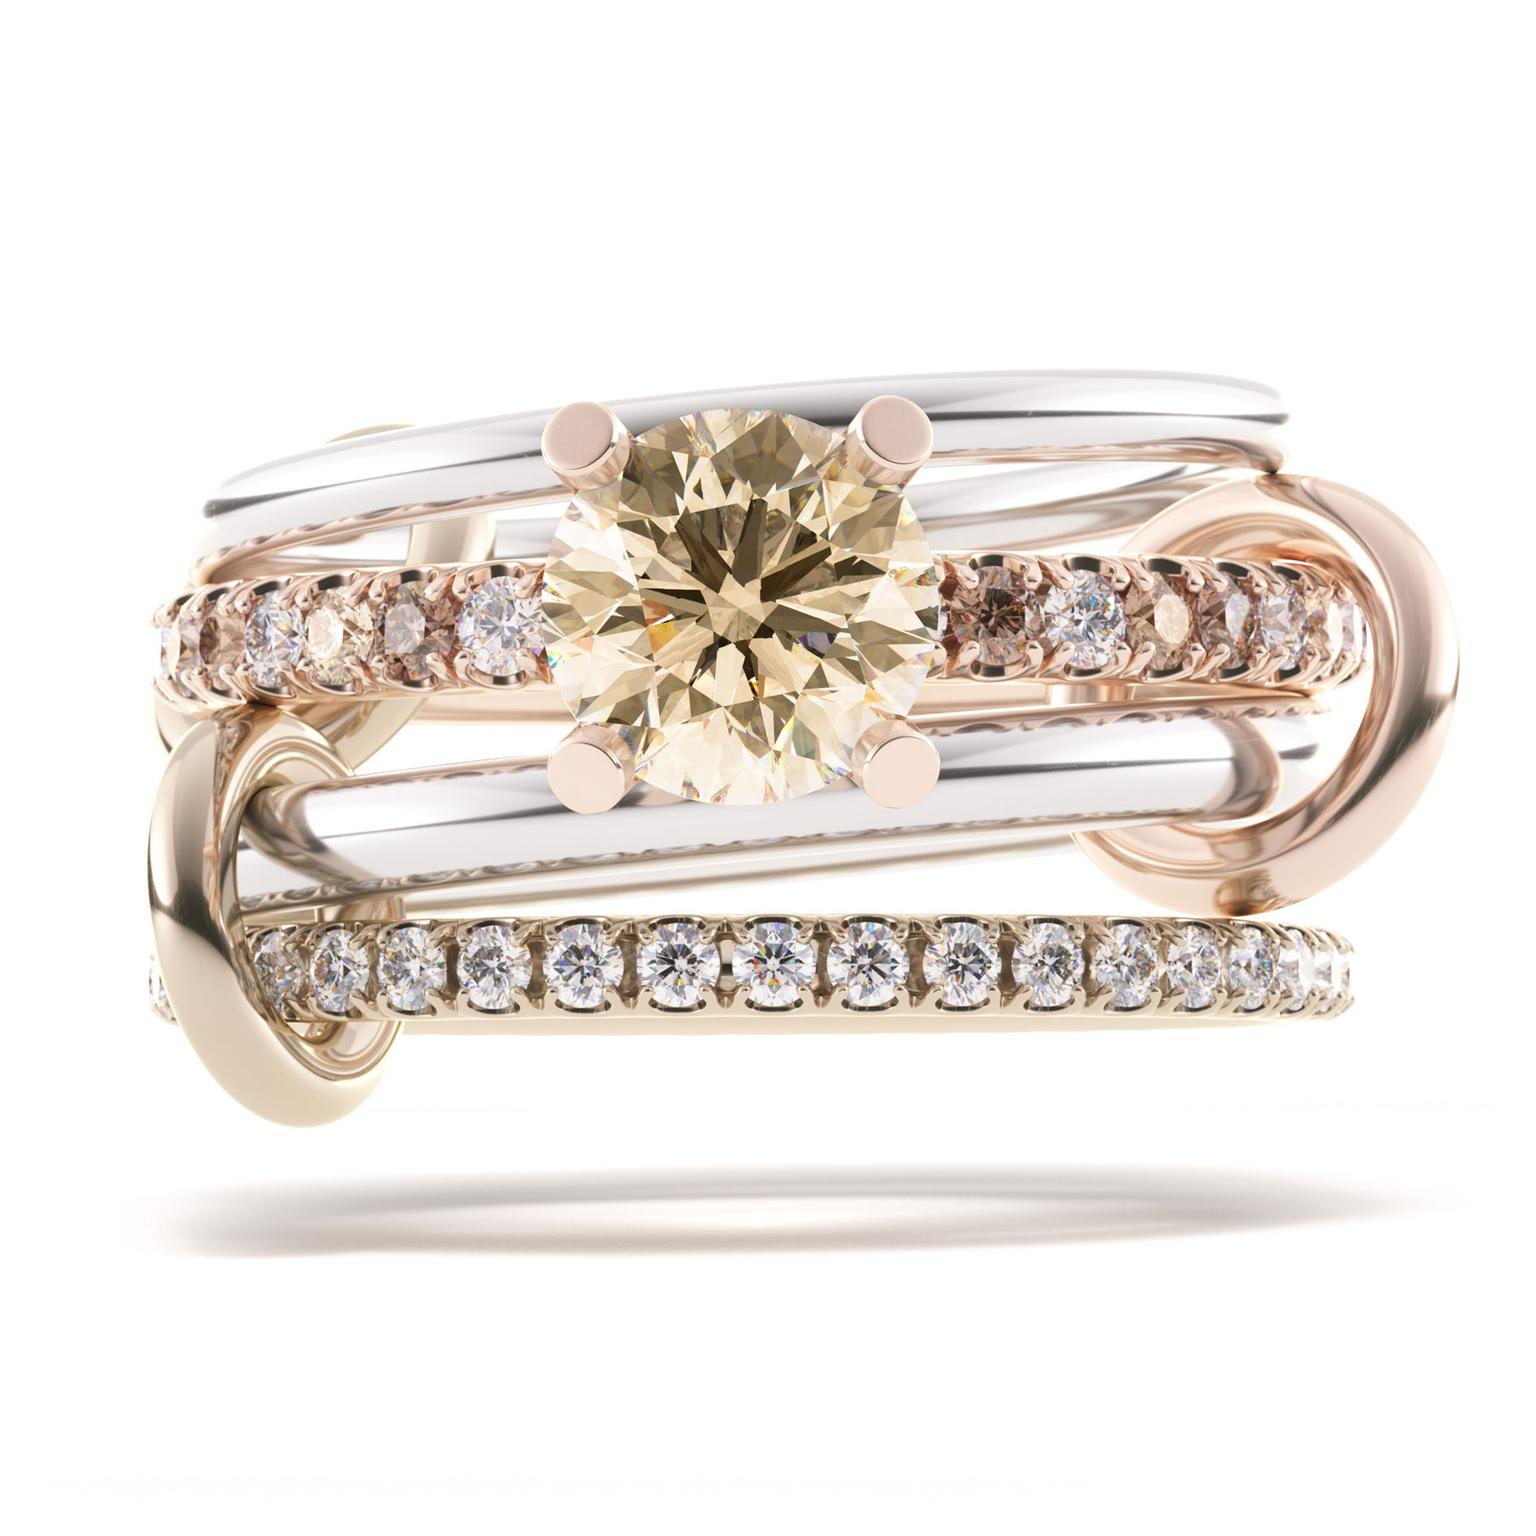 rings rose gold engagement diamond champagne diamondstud